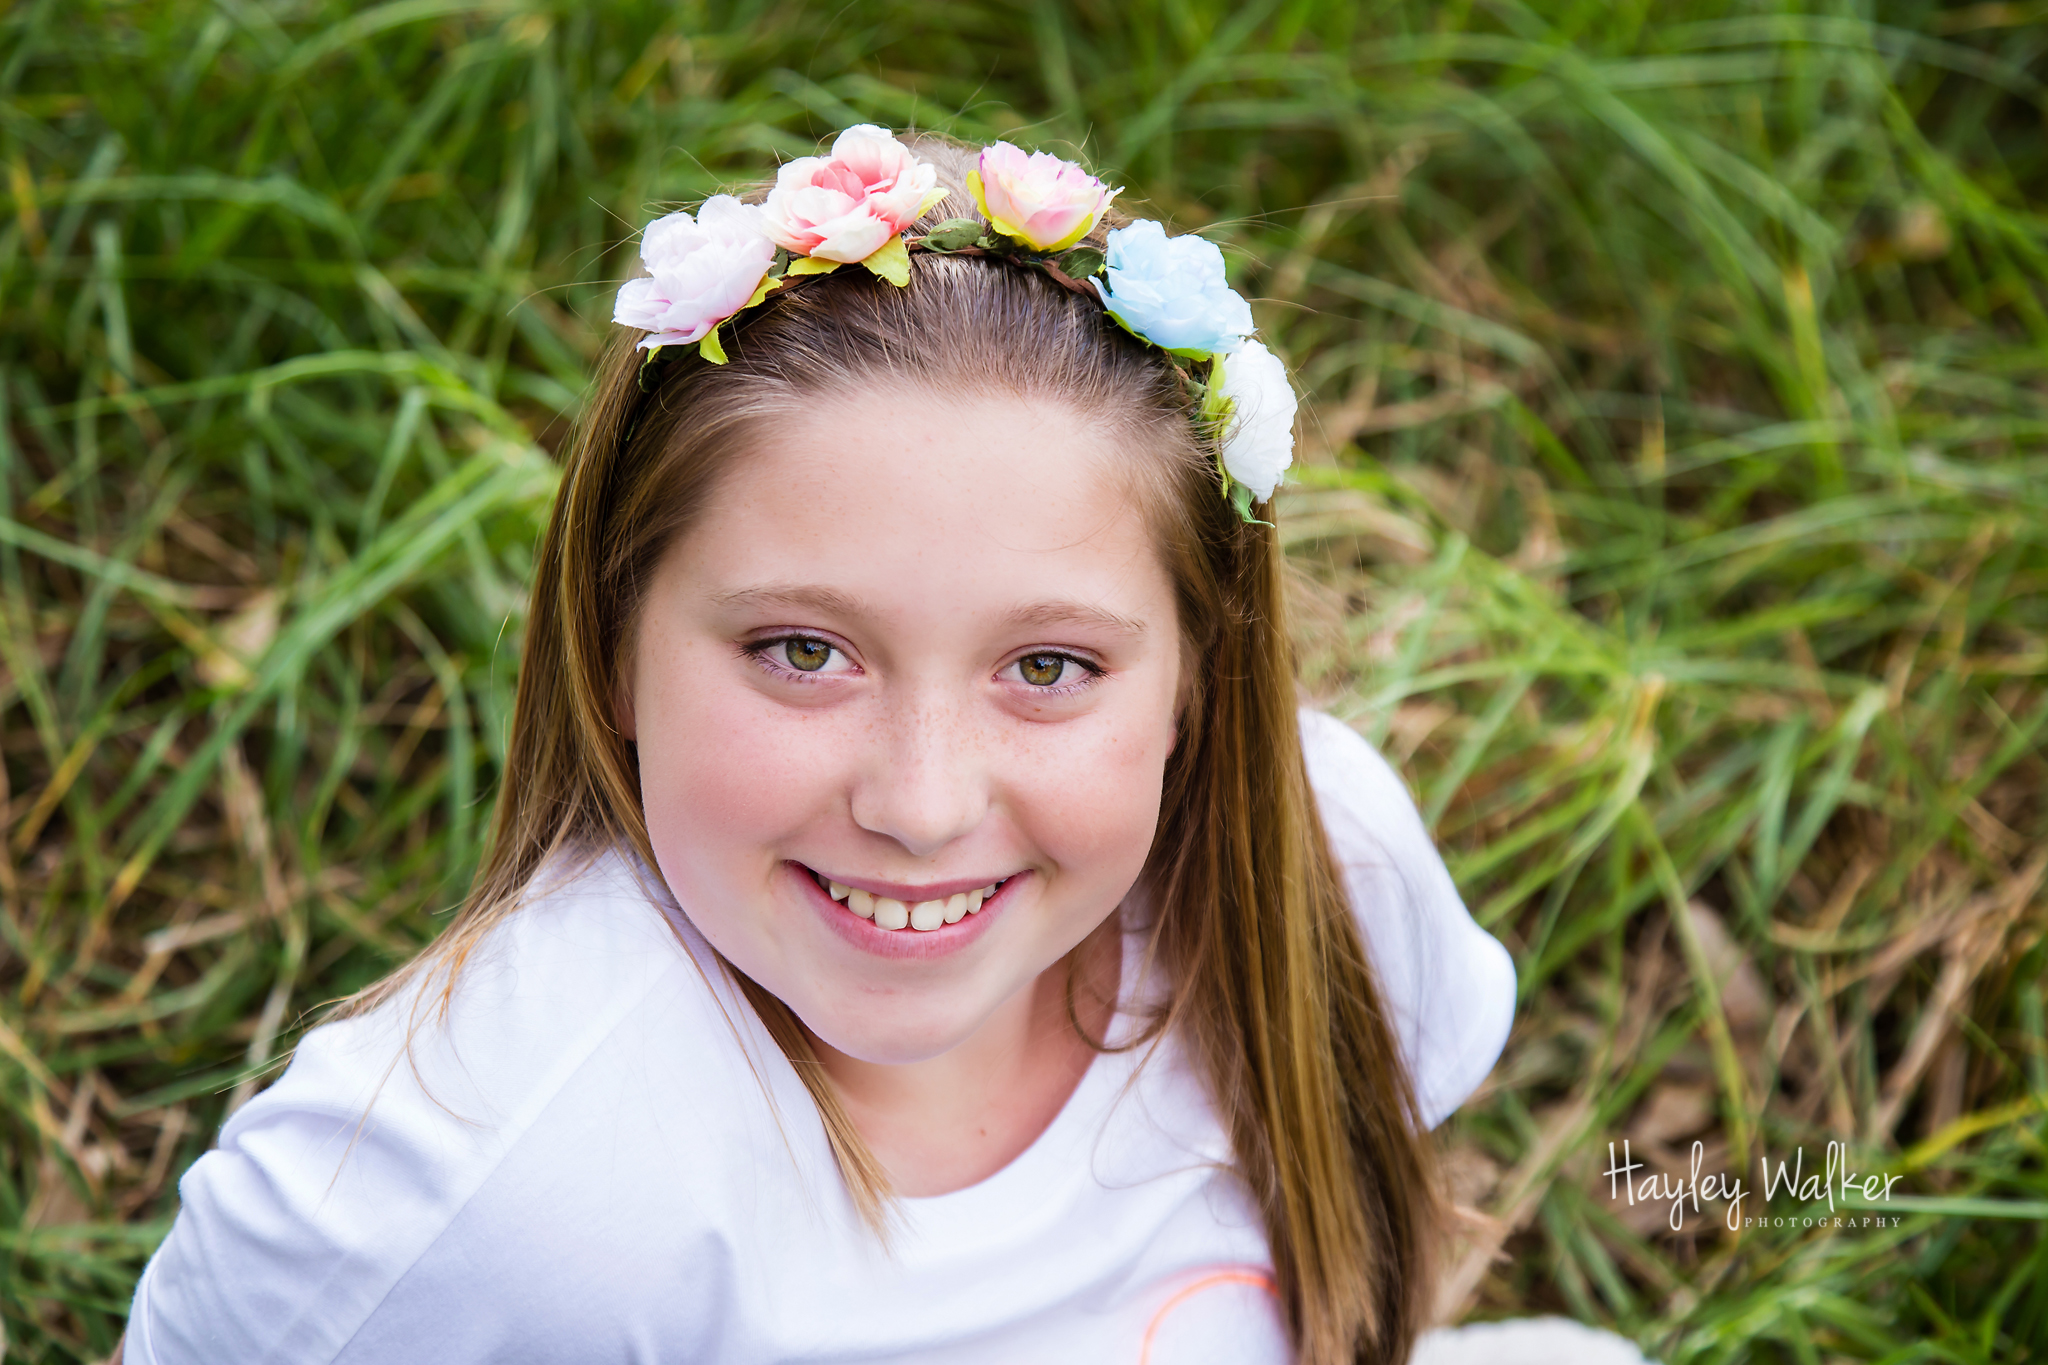 003-hayley-walker-photography-hillcrest-durban-photographer-family-photoshoot